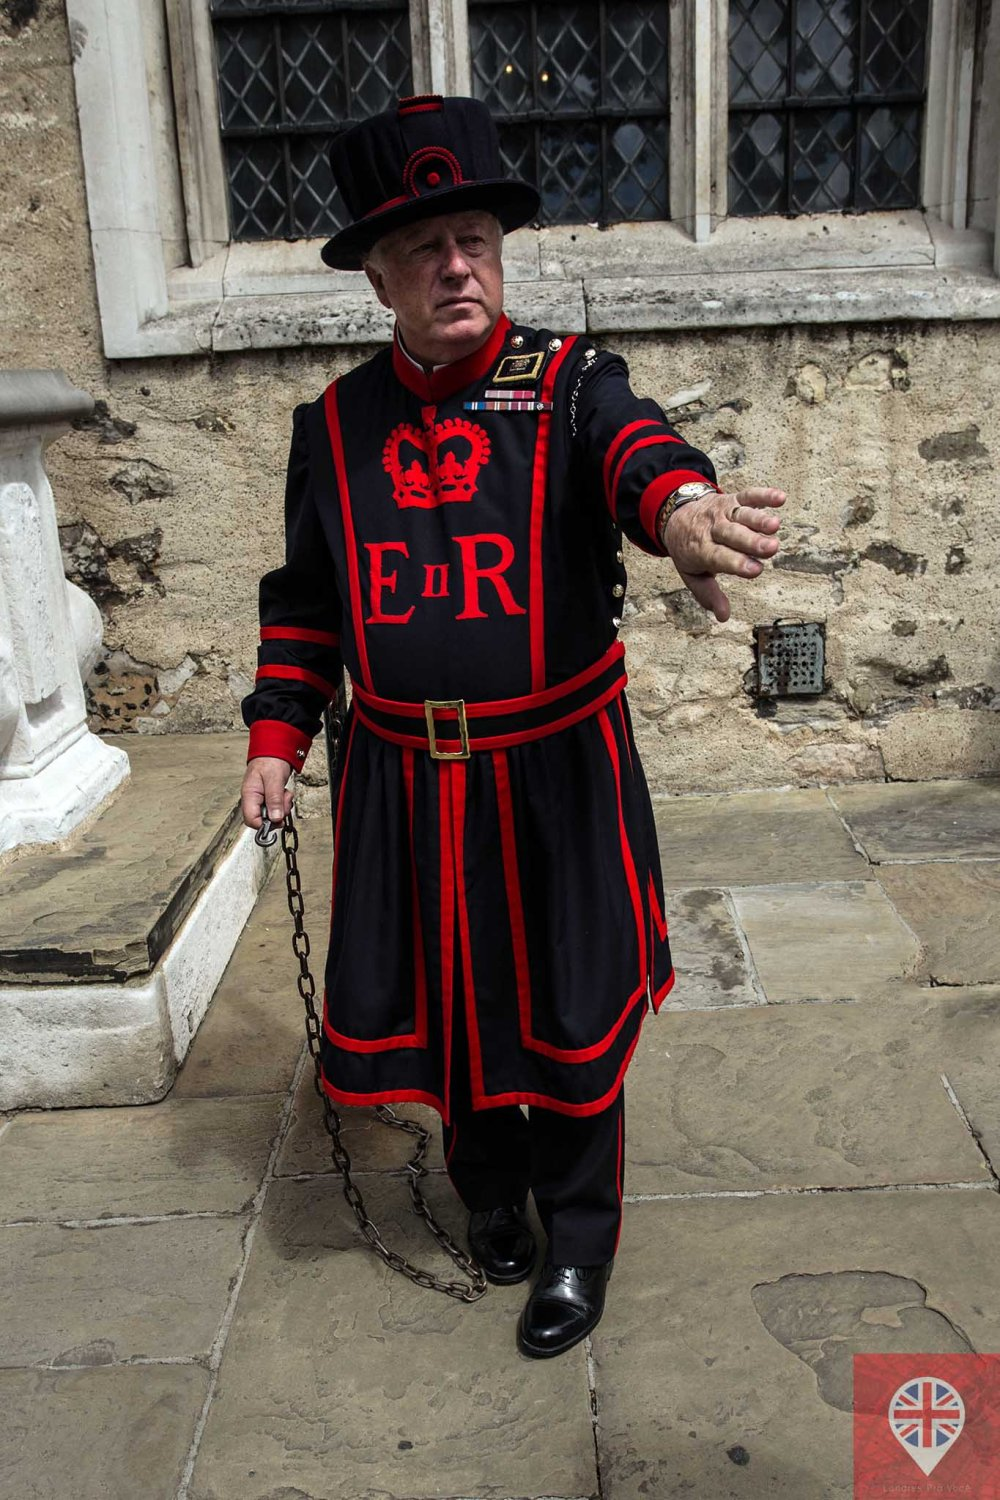 Tower of London warder